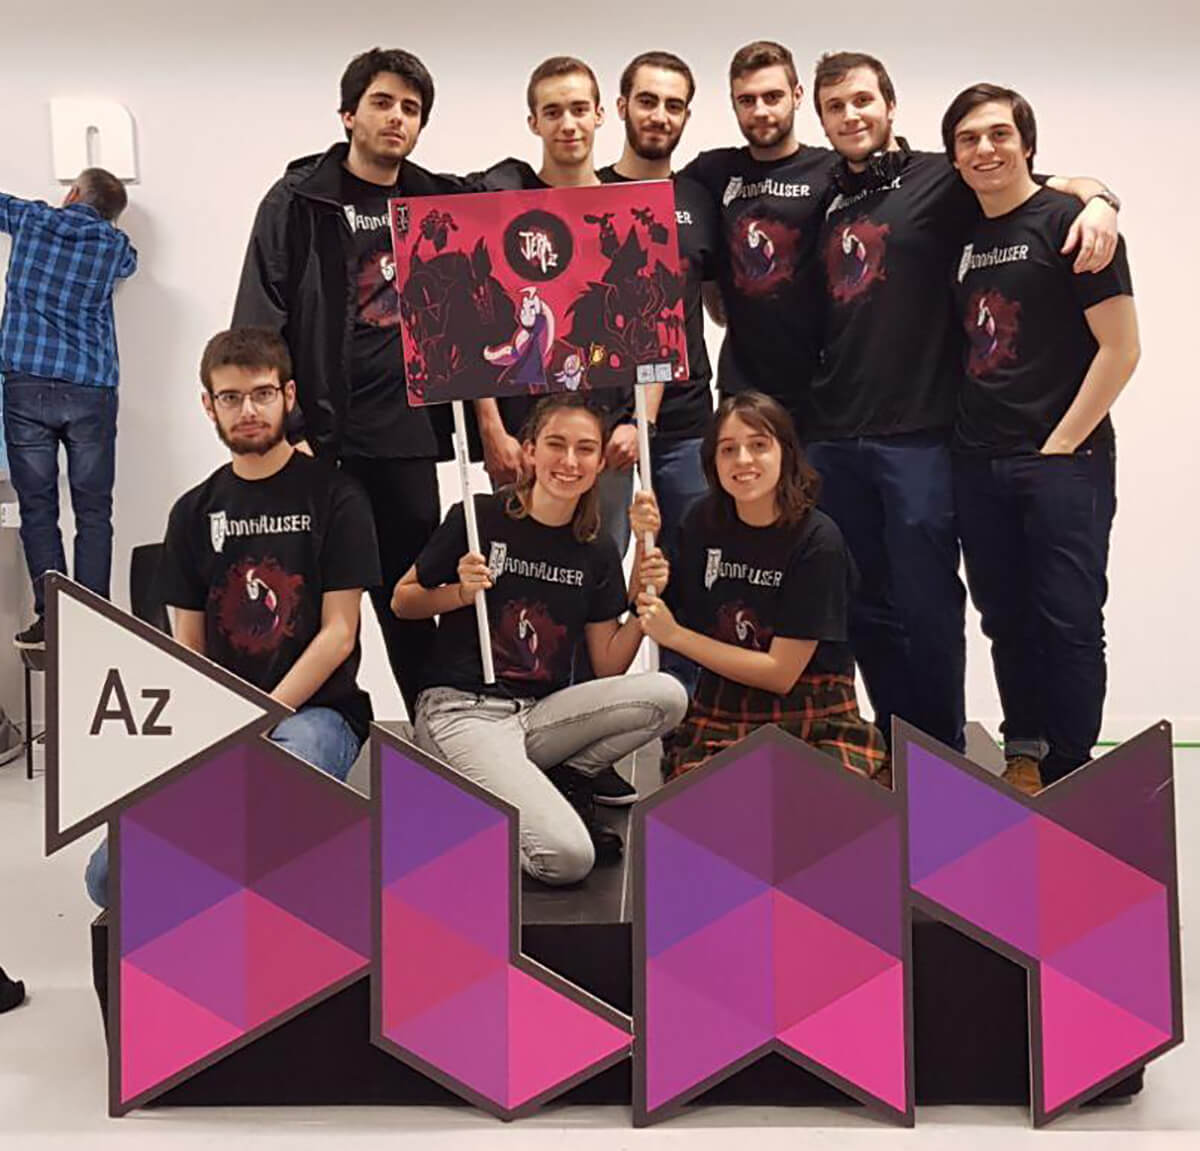 Picture of Team Tannhauser holding a Jera flag in front of an AzPlay sign